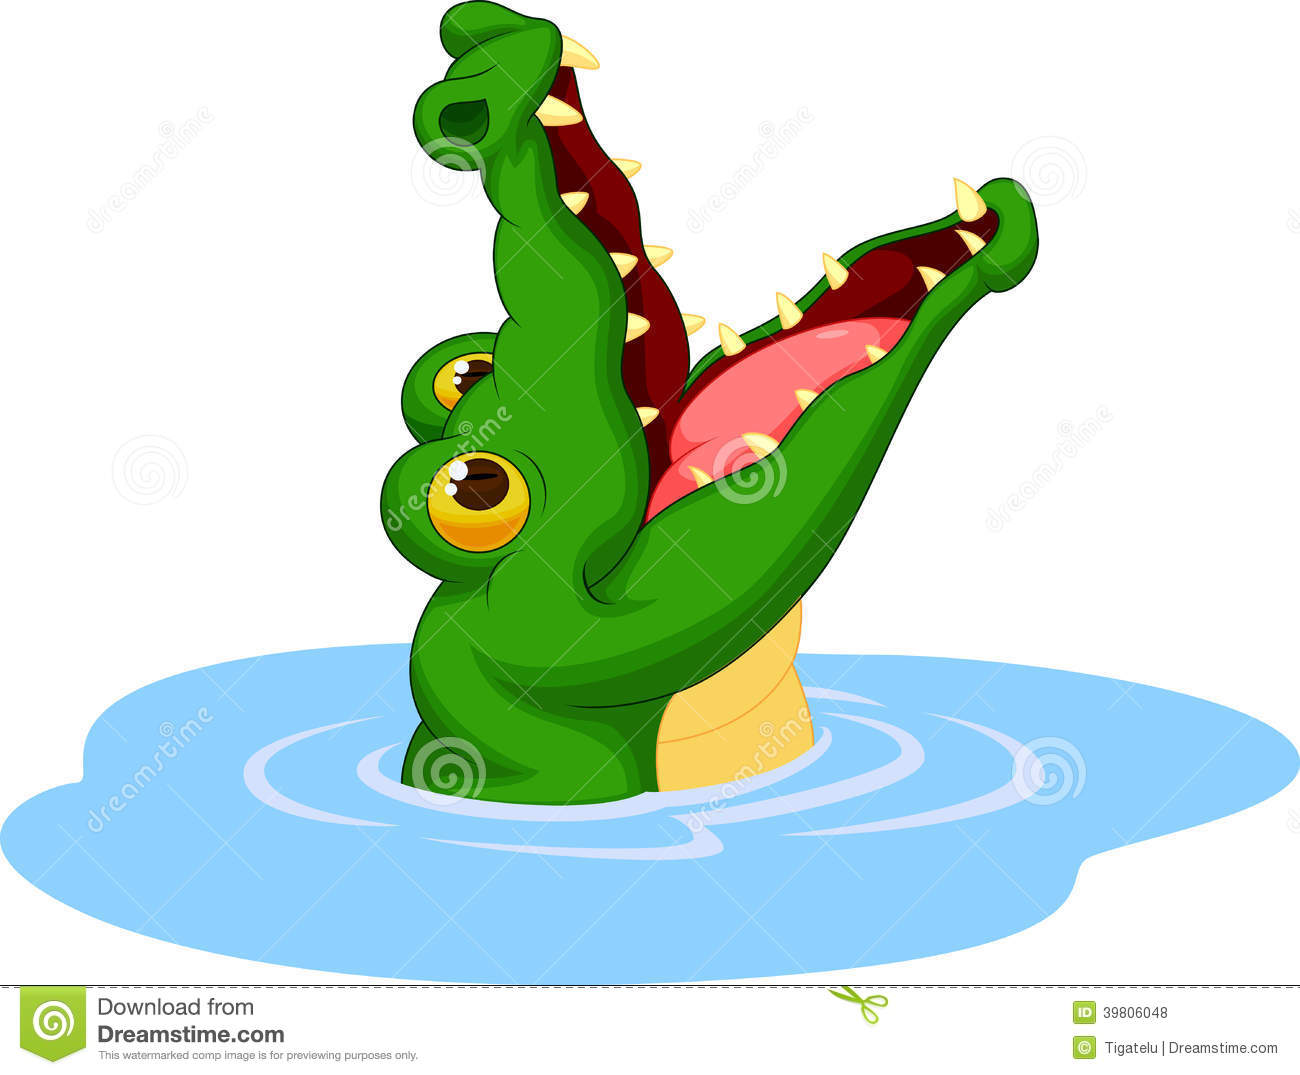 Crocodile Cartoon Open Its Mouth Stock Vector - Image: 39806048